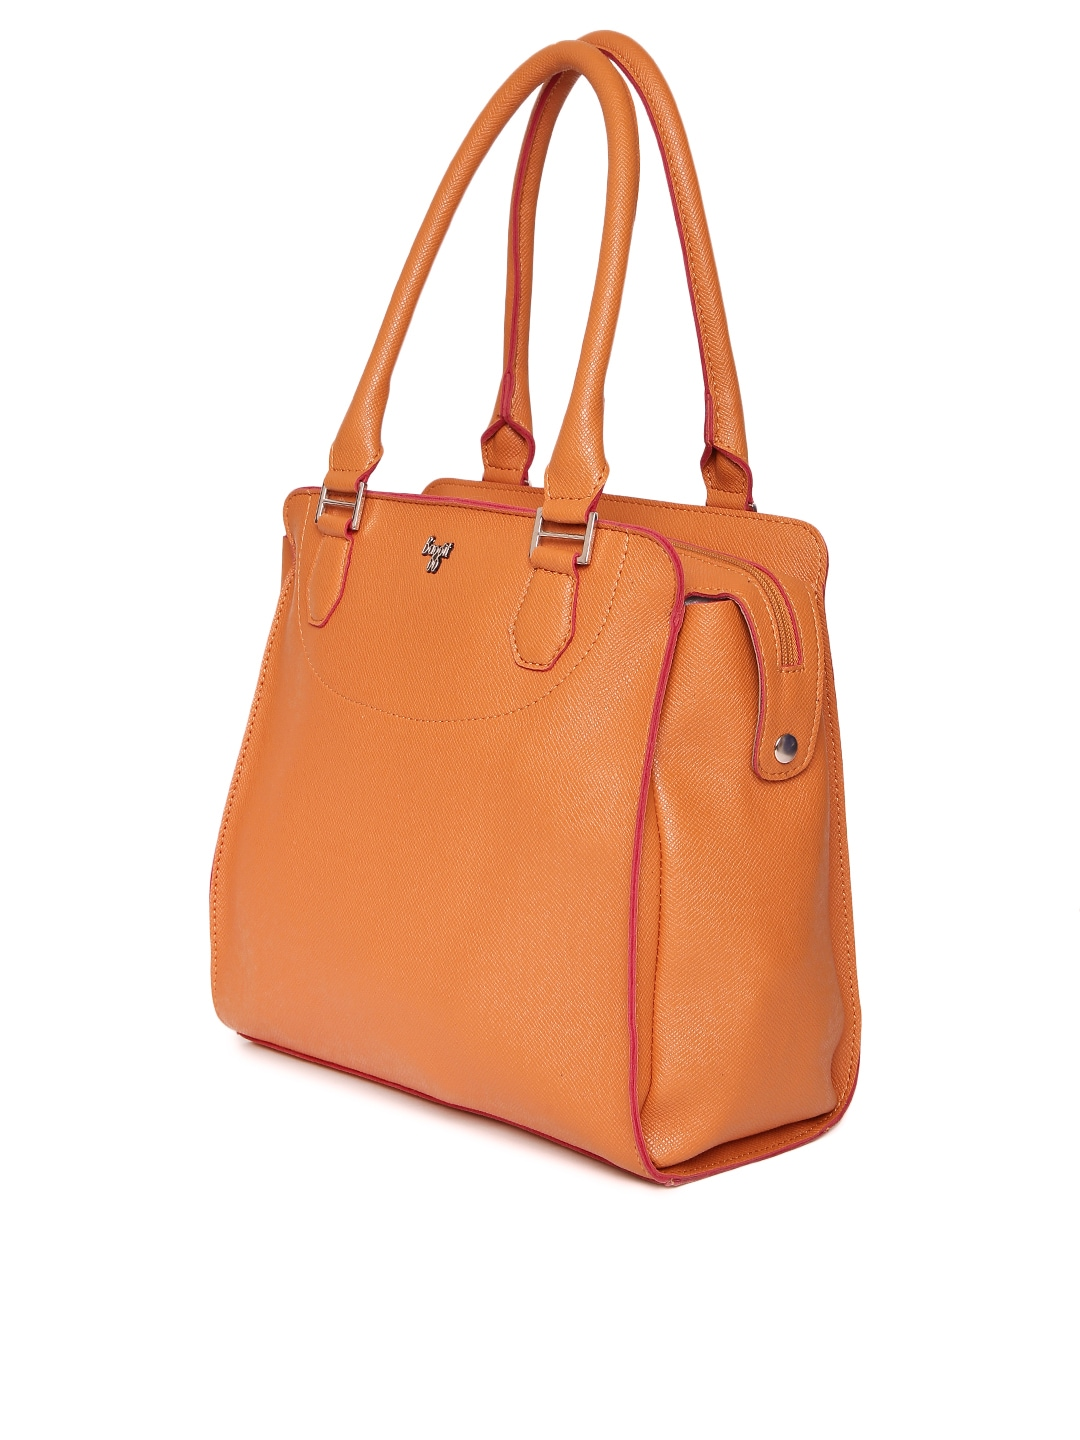 Baggit - Exclusive Baggit Online Store in India at Myntra